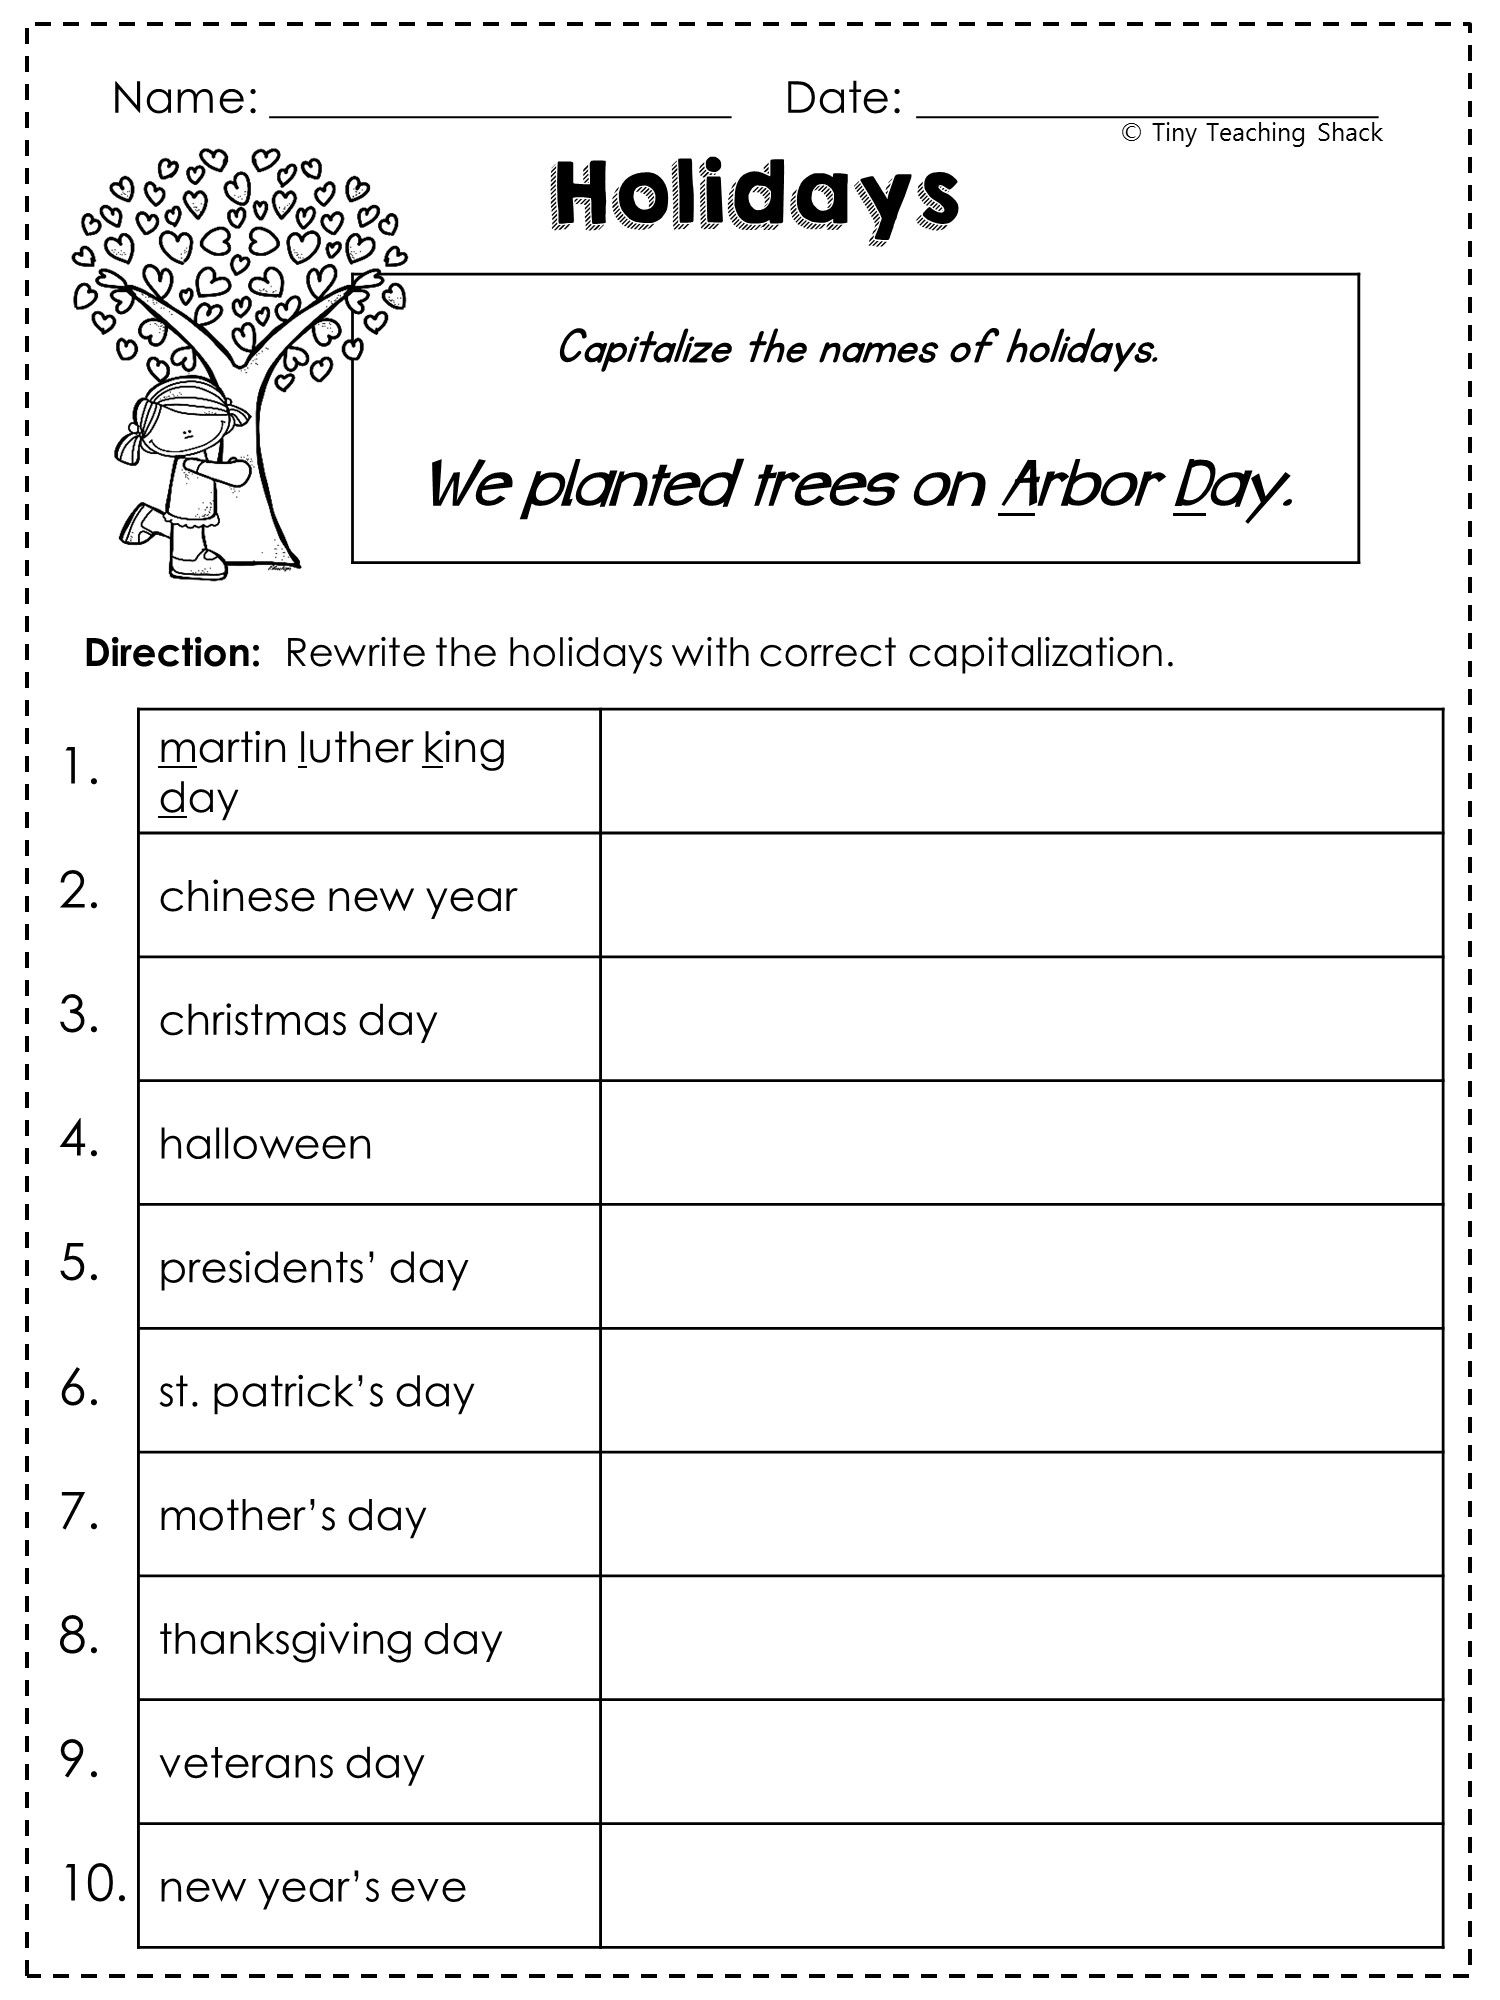 Free Capitalization Worksheet